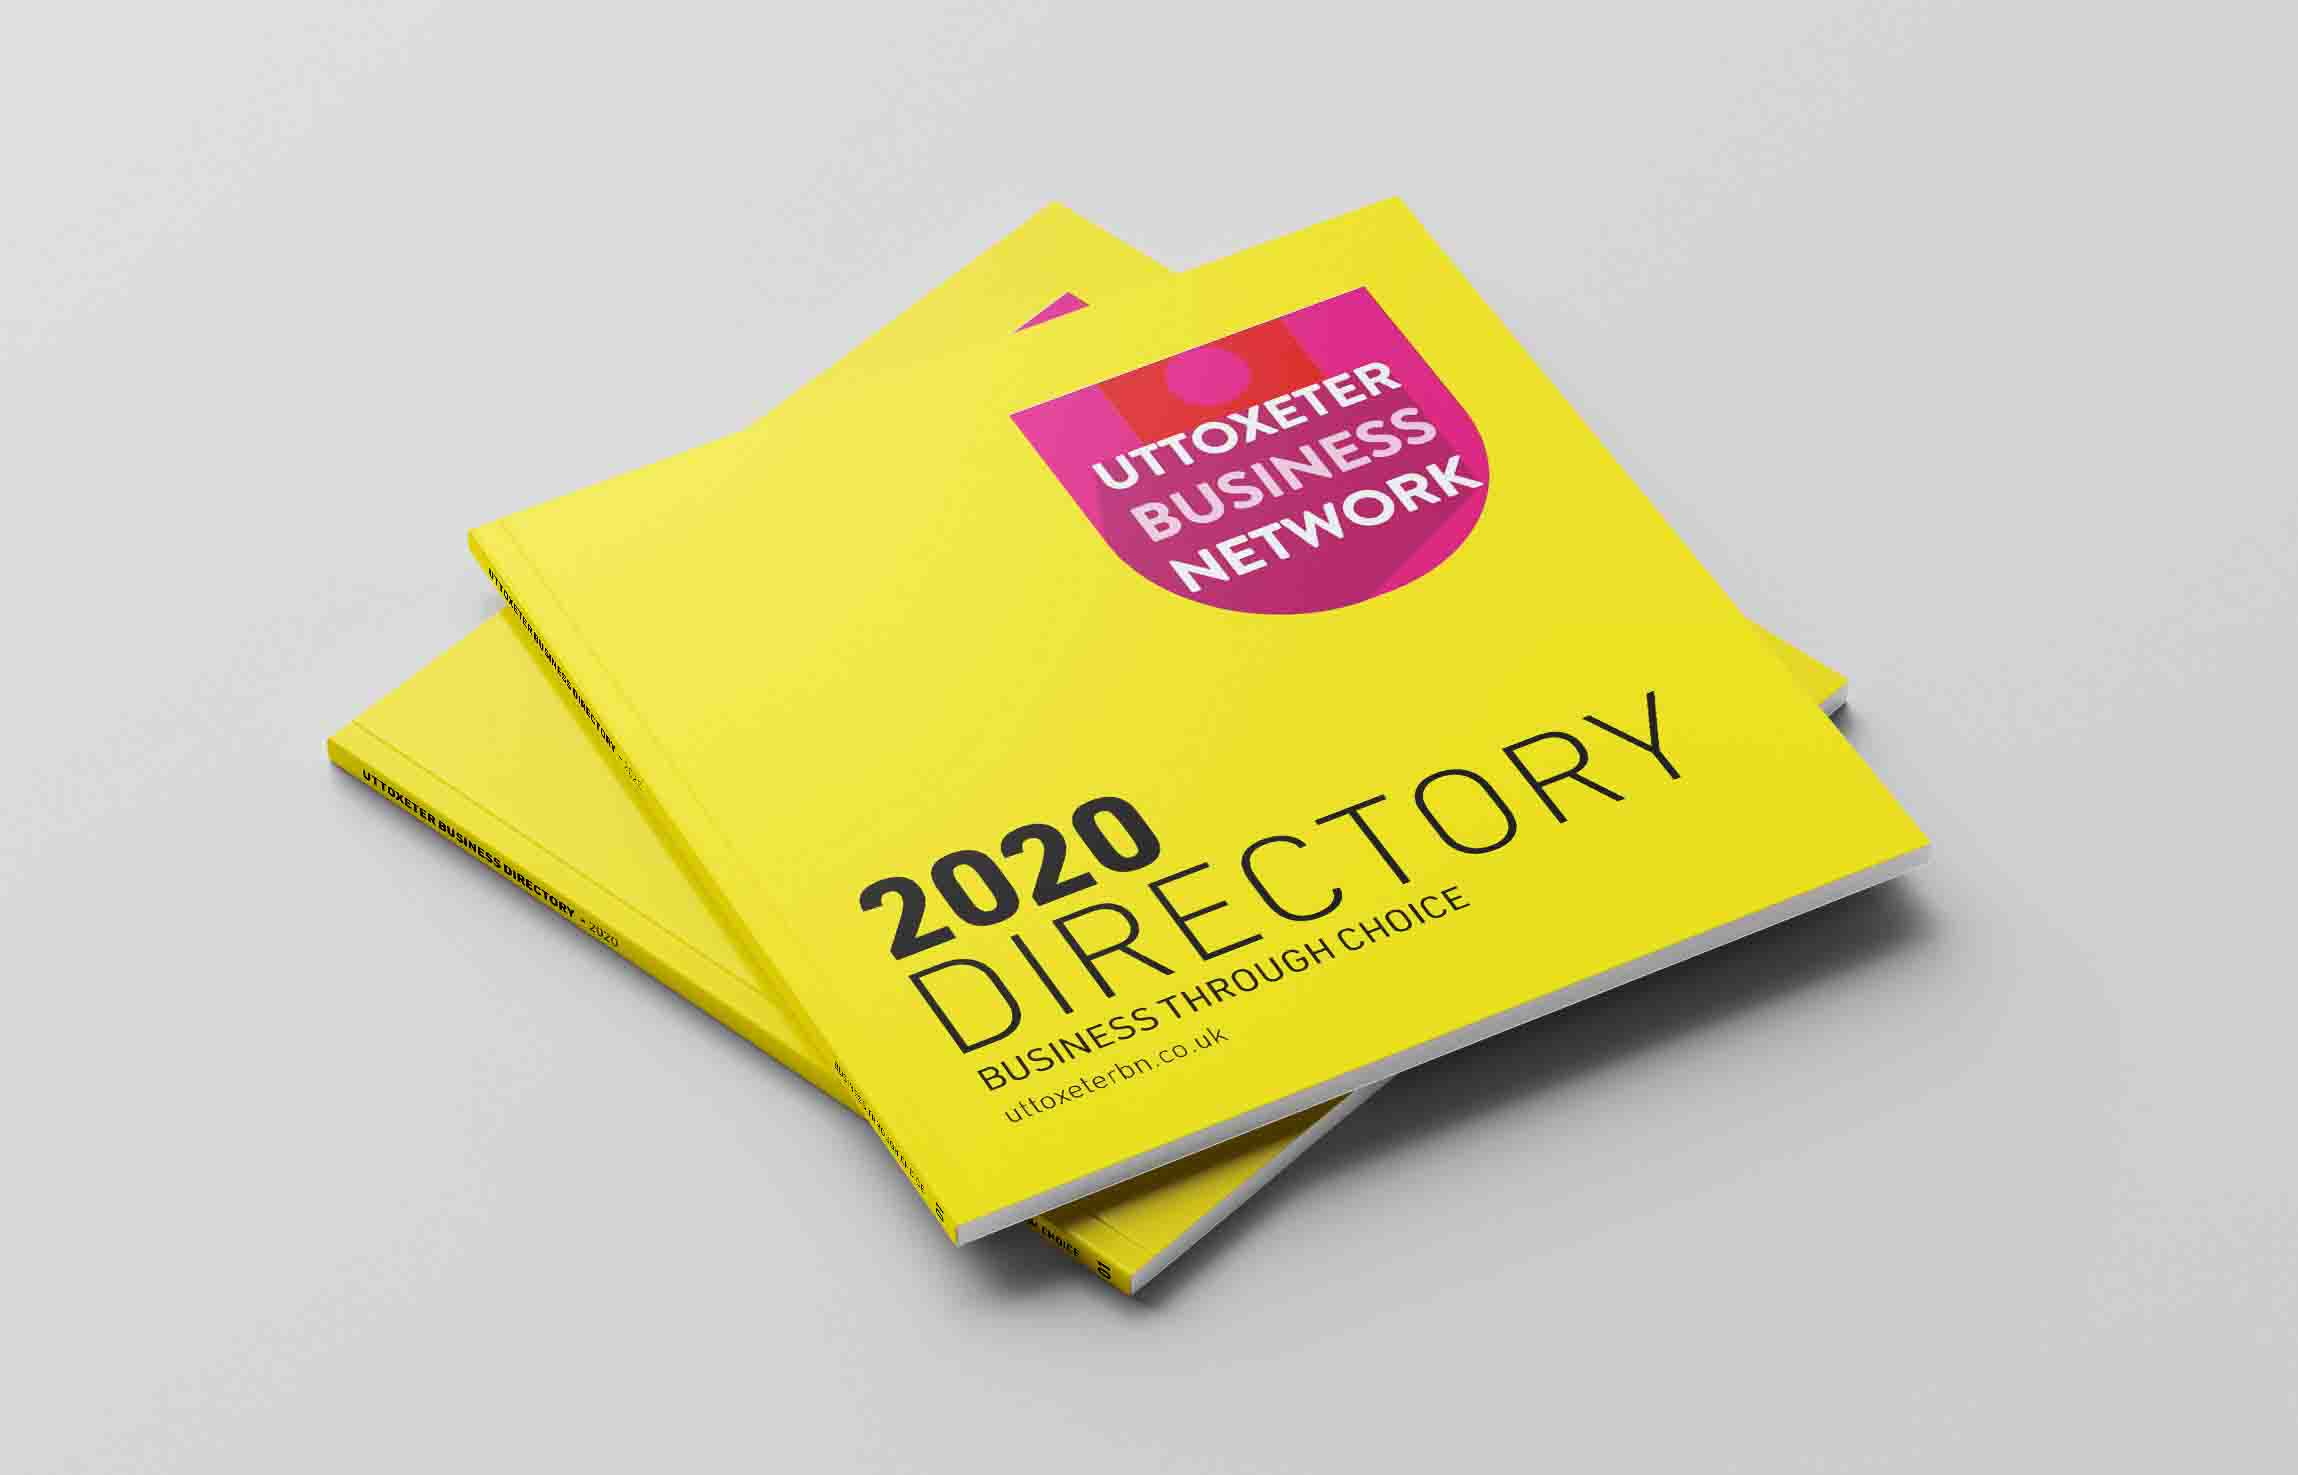 Uttoxeter Business Network Directory